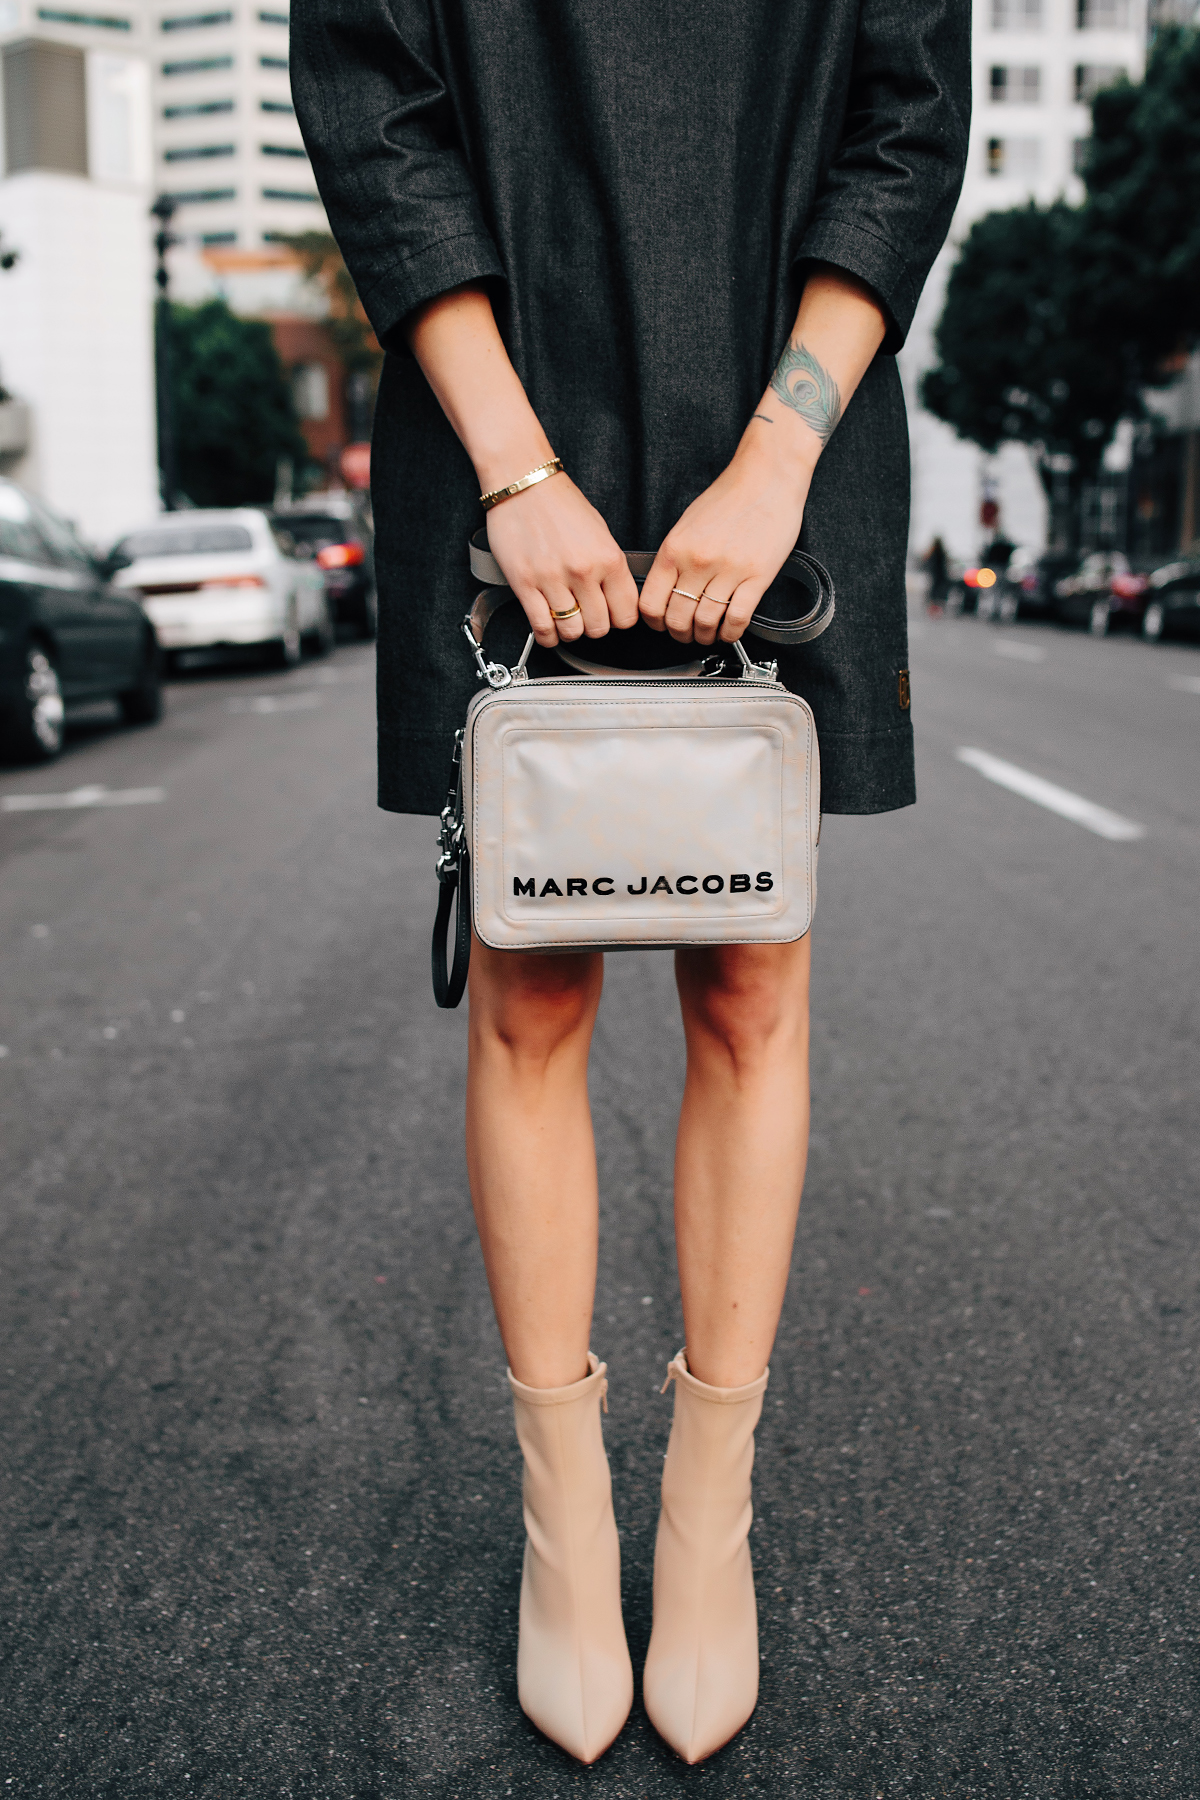 Woman Wearing Marc Jacobs Box Bag Marc Jacobs Denim Shift Dress Tan Heeled Booties Fashion Jackson San Diego Fashion Blogger Street Style